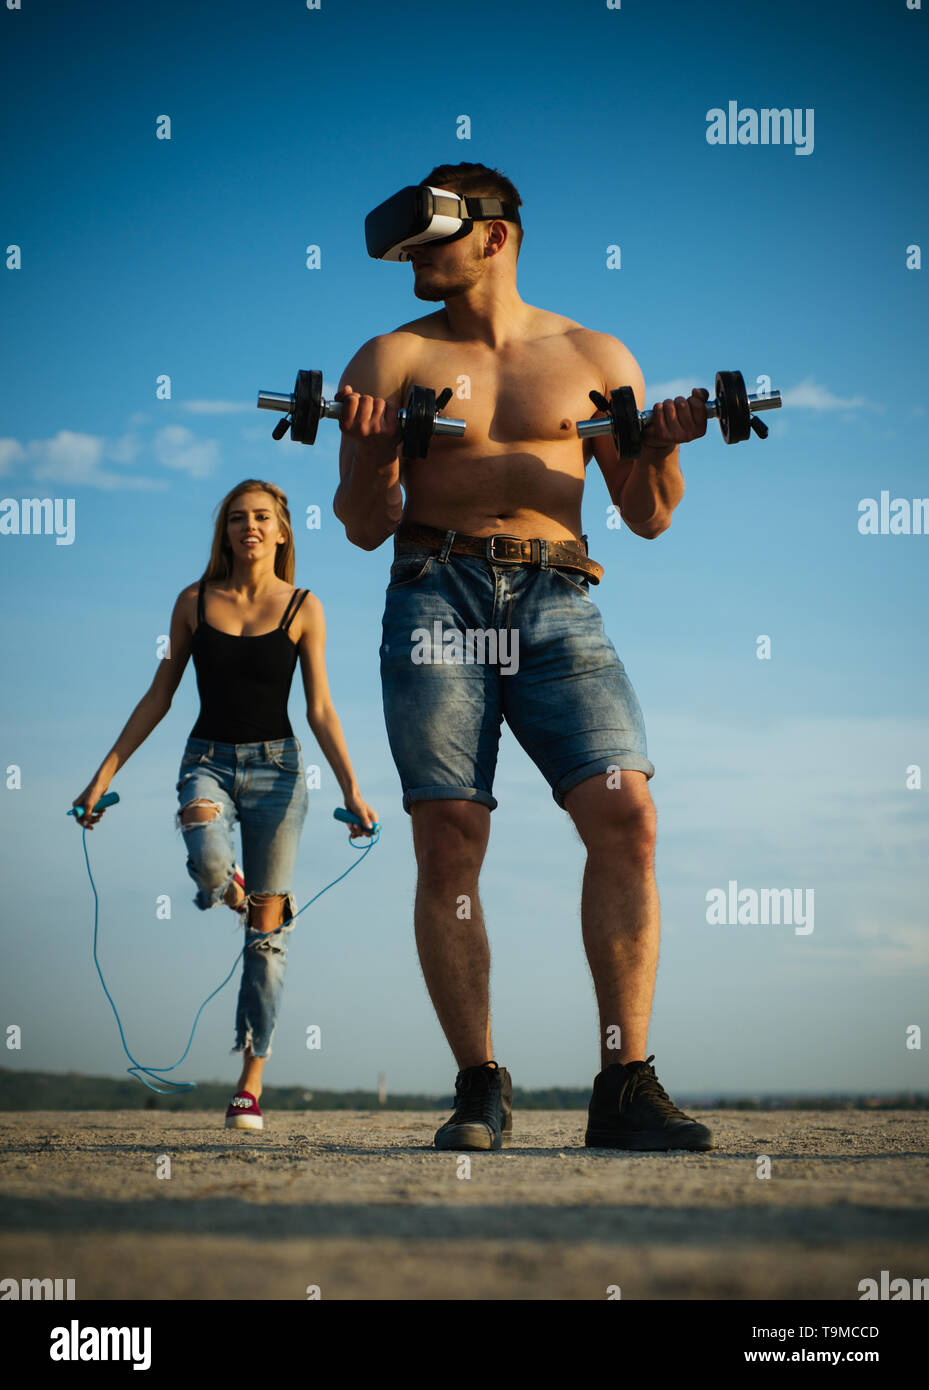 Future champions training outdoor. Future victory with new technology. Man use future technology to build muscle. Your vision is your future - Stock Image